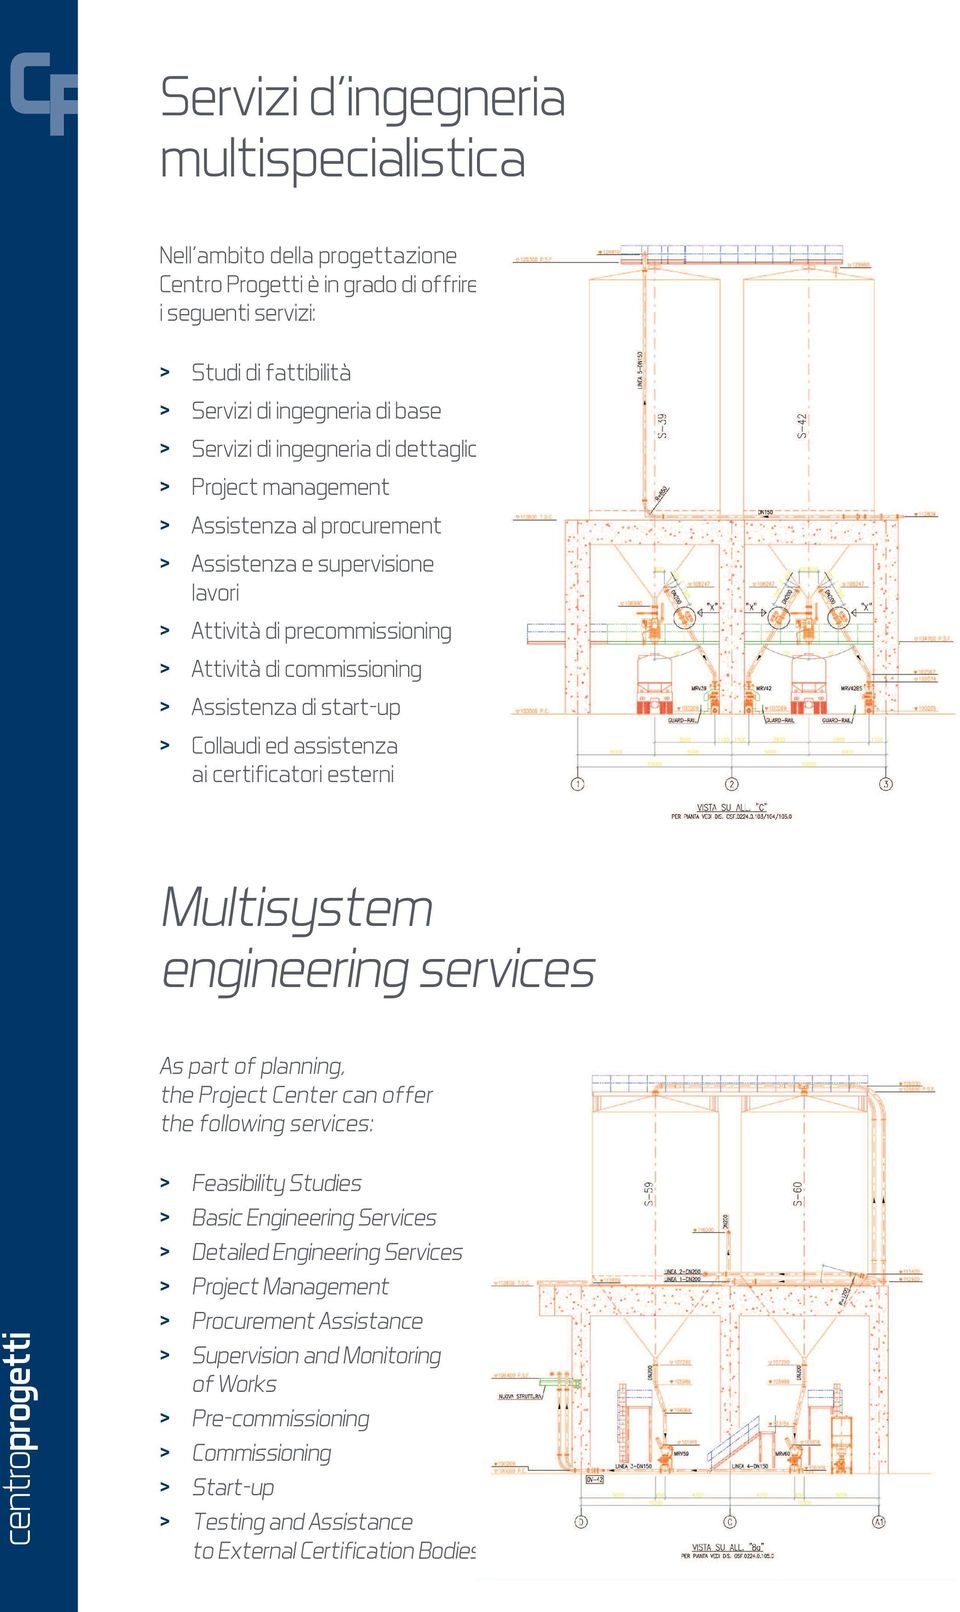 Collaudi ed assistenza ai certificatori esterni Multisystem engineering services As part of planning, the Project Center can offer the following services: > Feasibility Studies > Basic Engineering